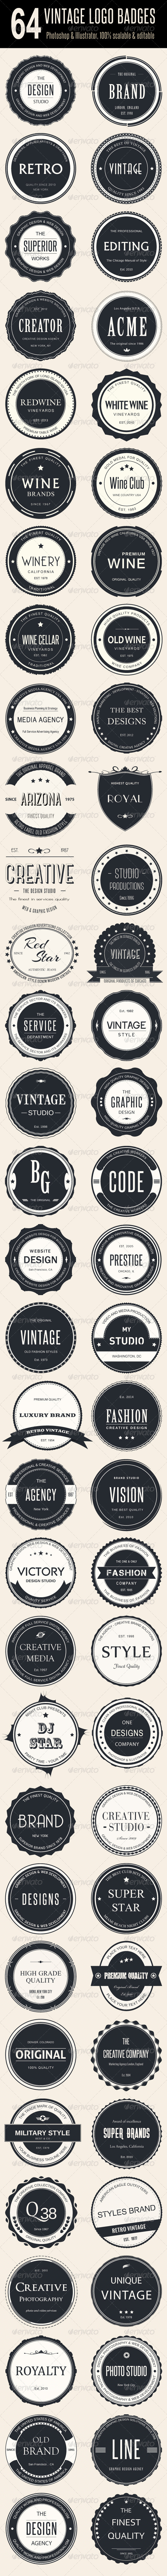 Bundle - 64 Vintage Logo Badges - Badges & Stickers Web Elements